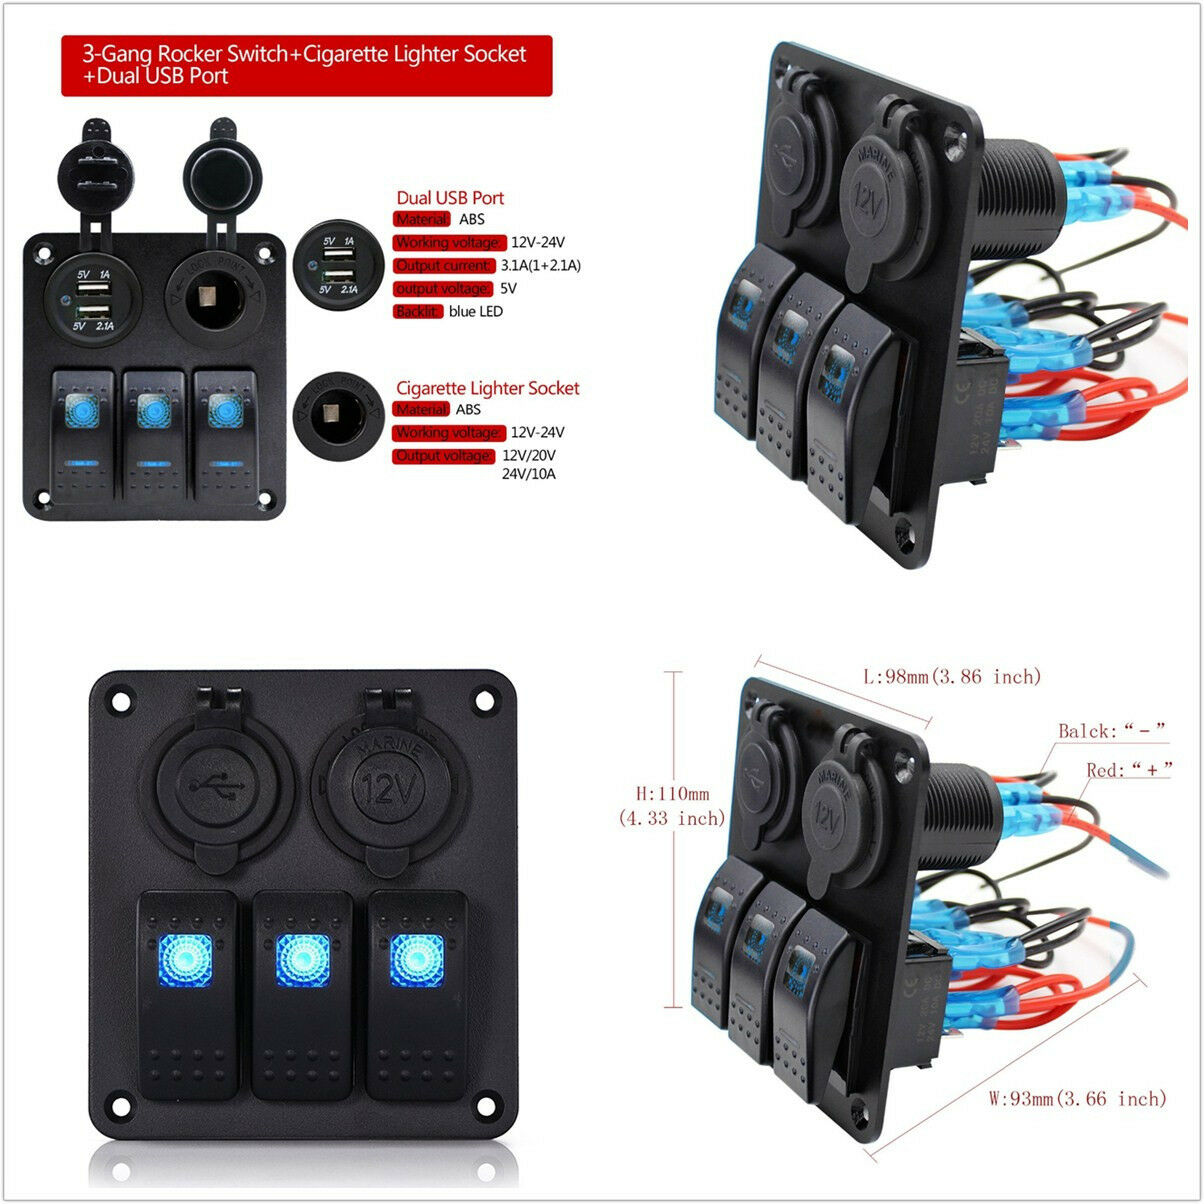 Waterproof 12/24V 3 Gang Car Truck Rocker Switch Panel Circuit Breaker Dual USB